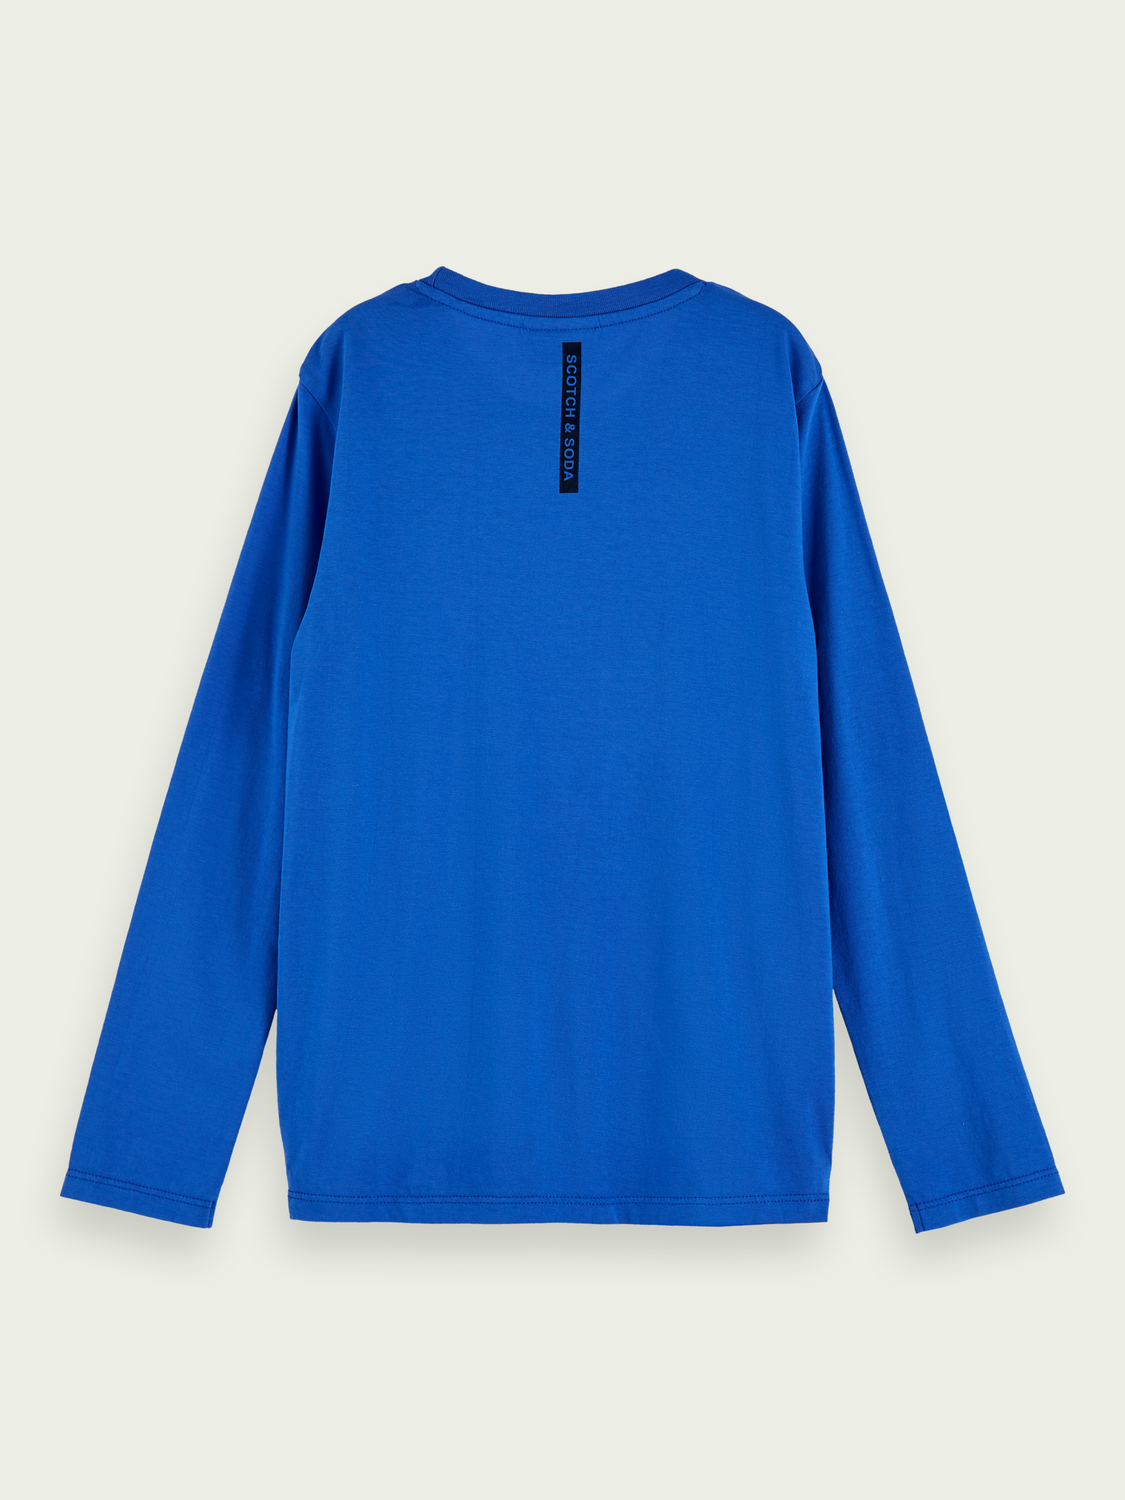 Kids 100% cotton Blauw long sleeve t-shirt